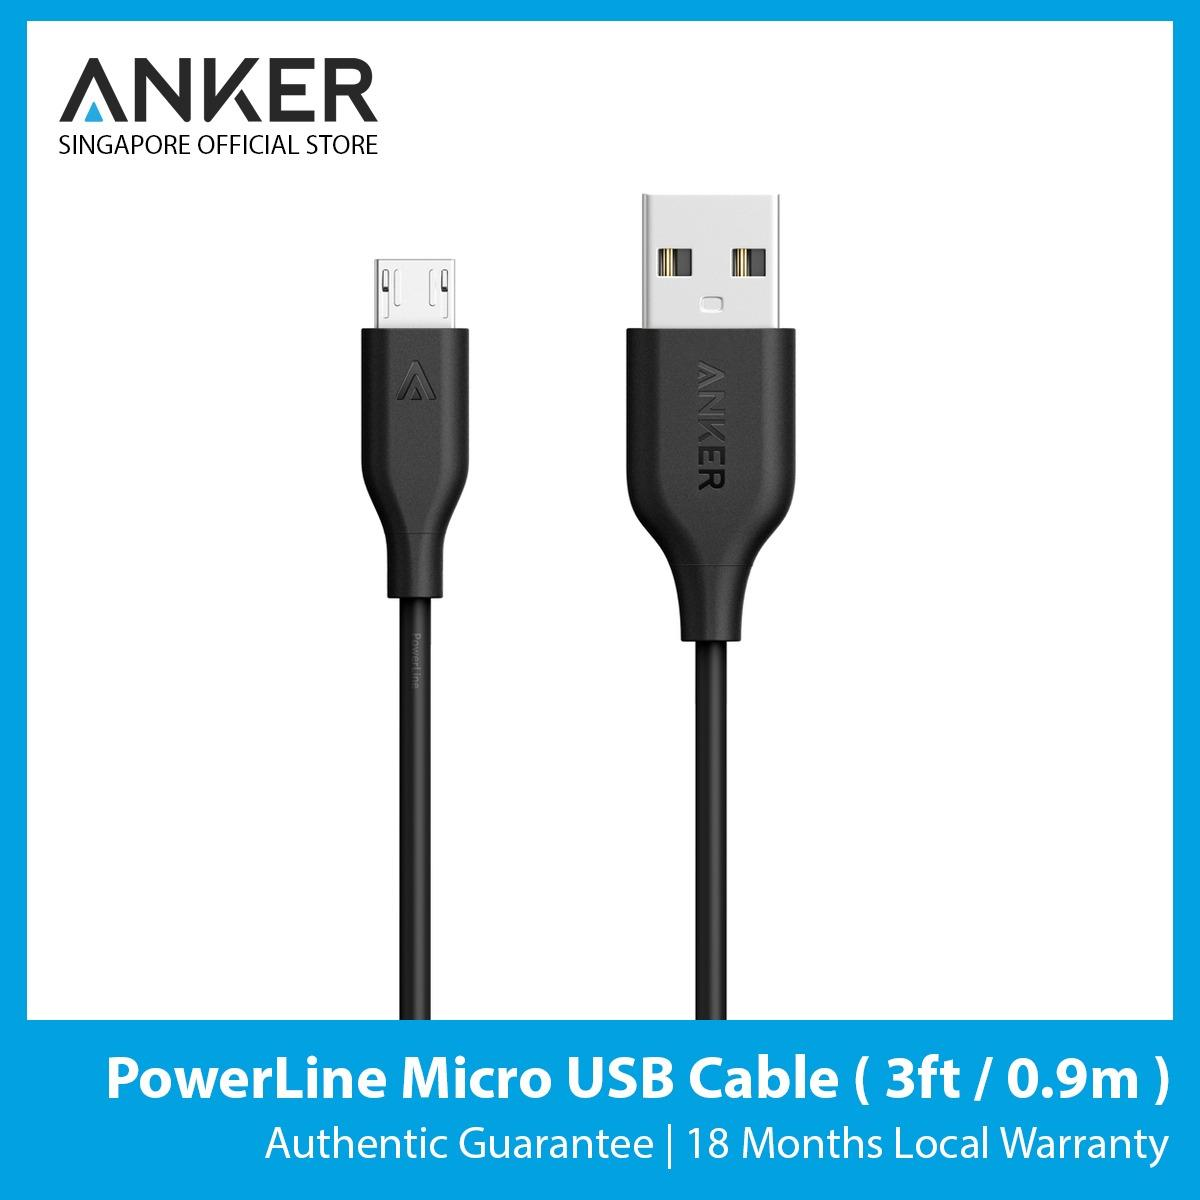 Price Anker Powerline Micro Usb Cable 3Ft 9M Online Singapore